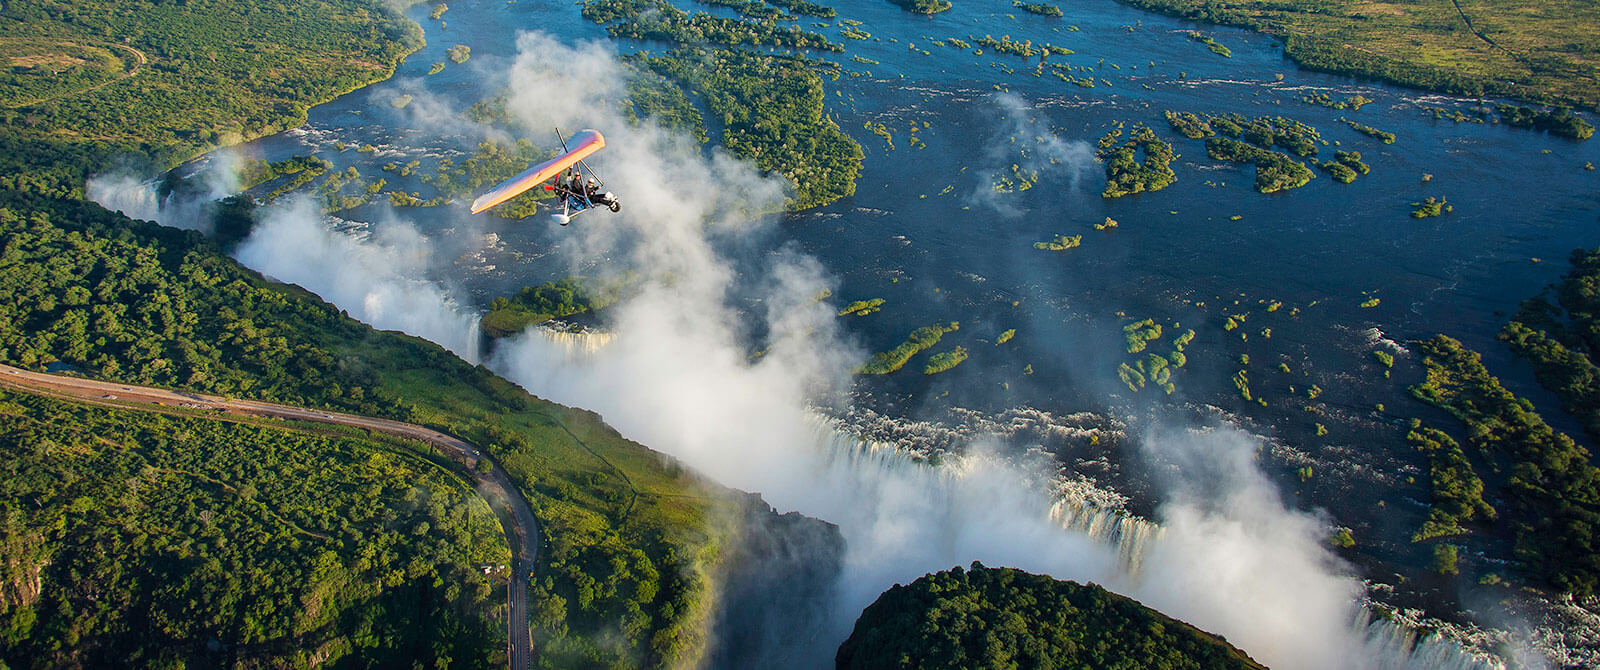 Victoria Falls Safari Packages - Best Africa Travel Agency - Book Your Trip to Victoria Falls